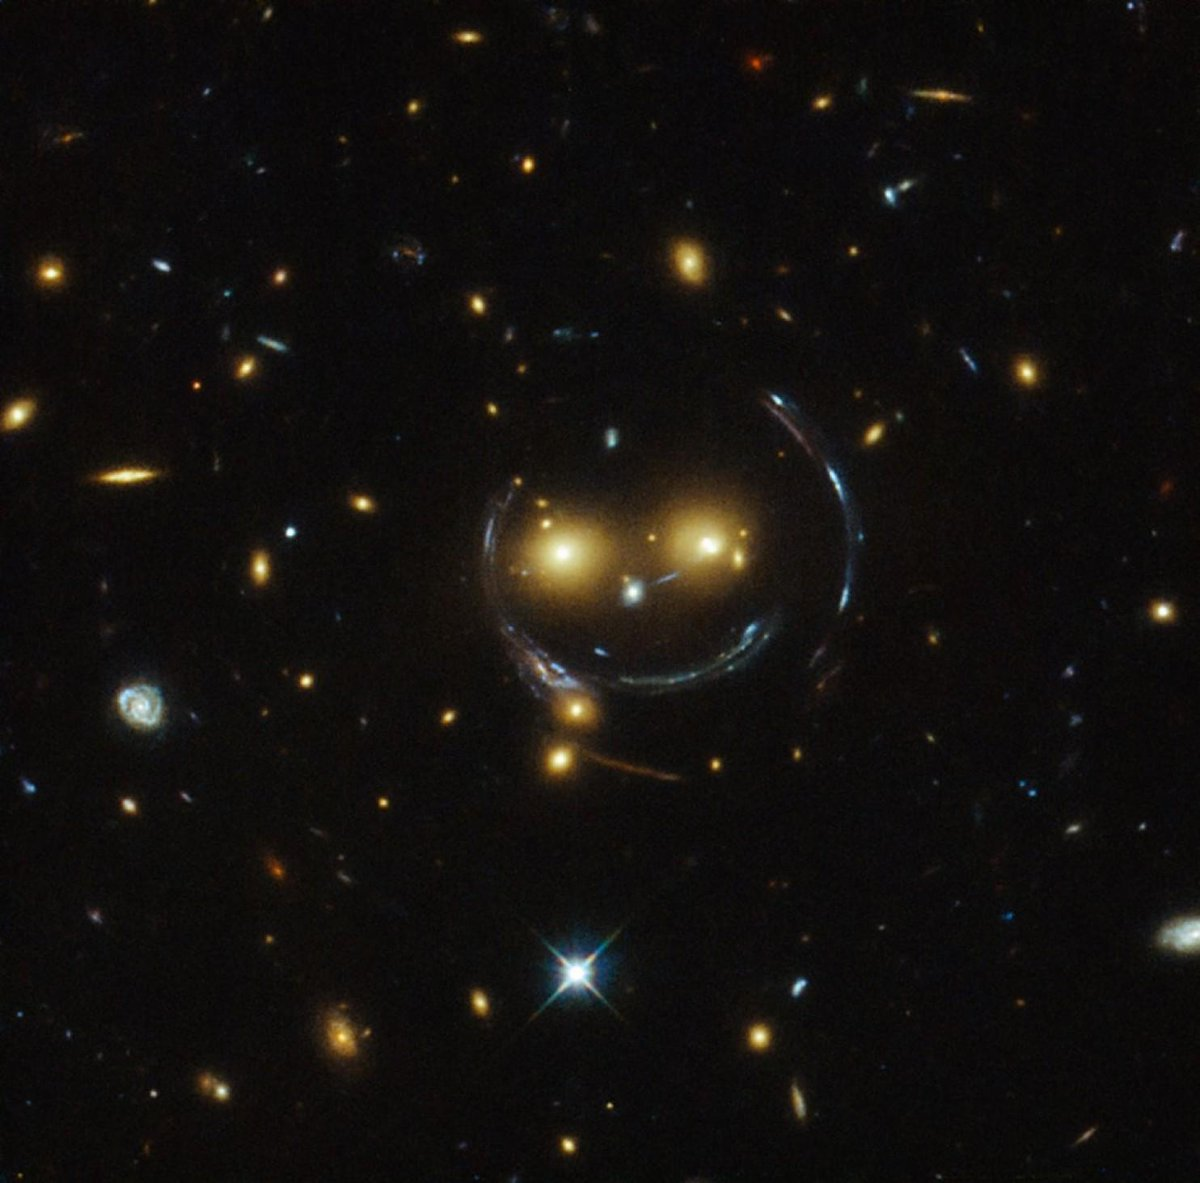 Look what the Hubble Telescope found!